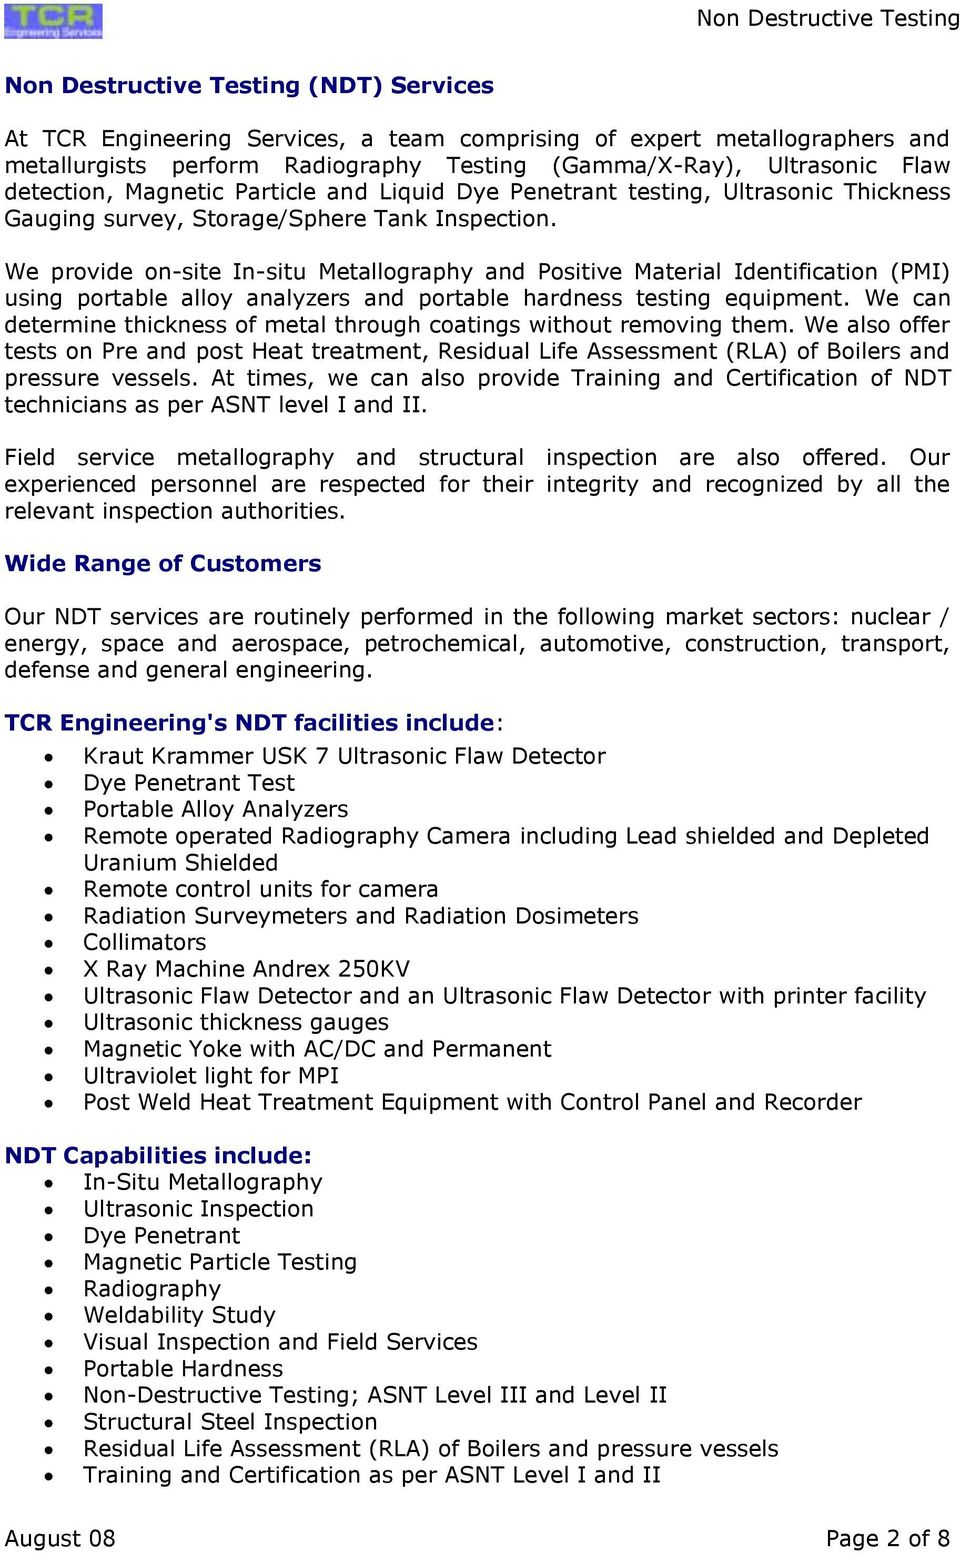 Non Destructive Testing (NDT) TCR Engineering Services A Material ...